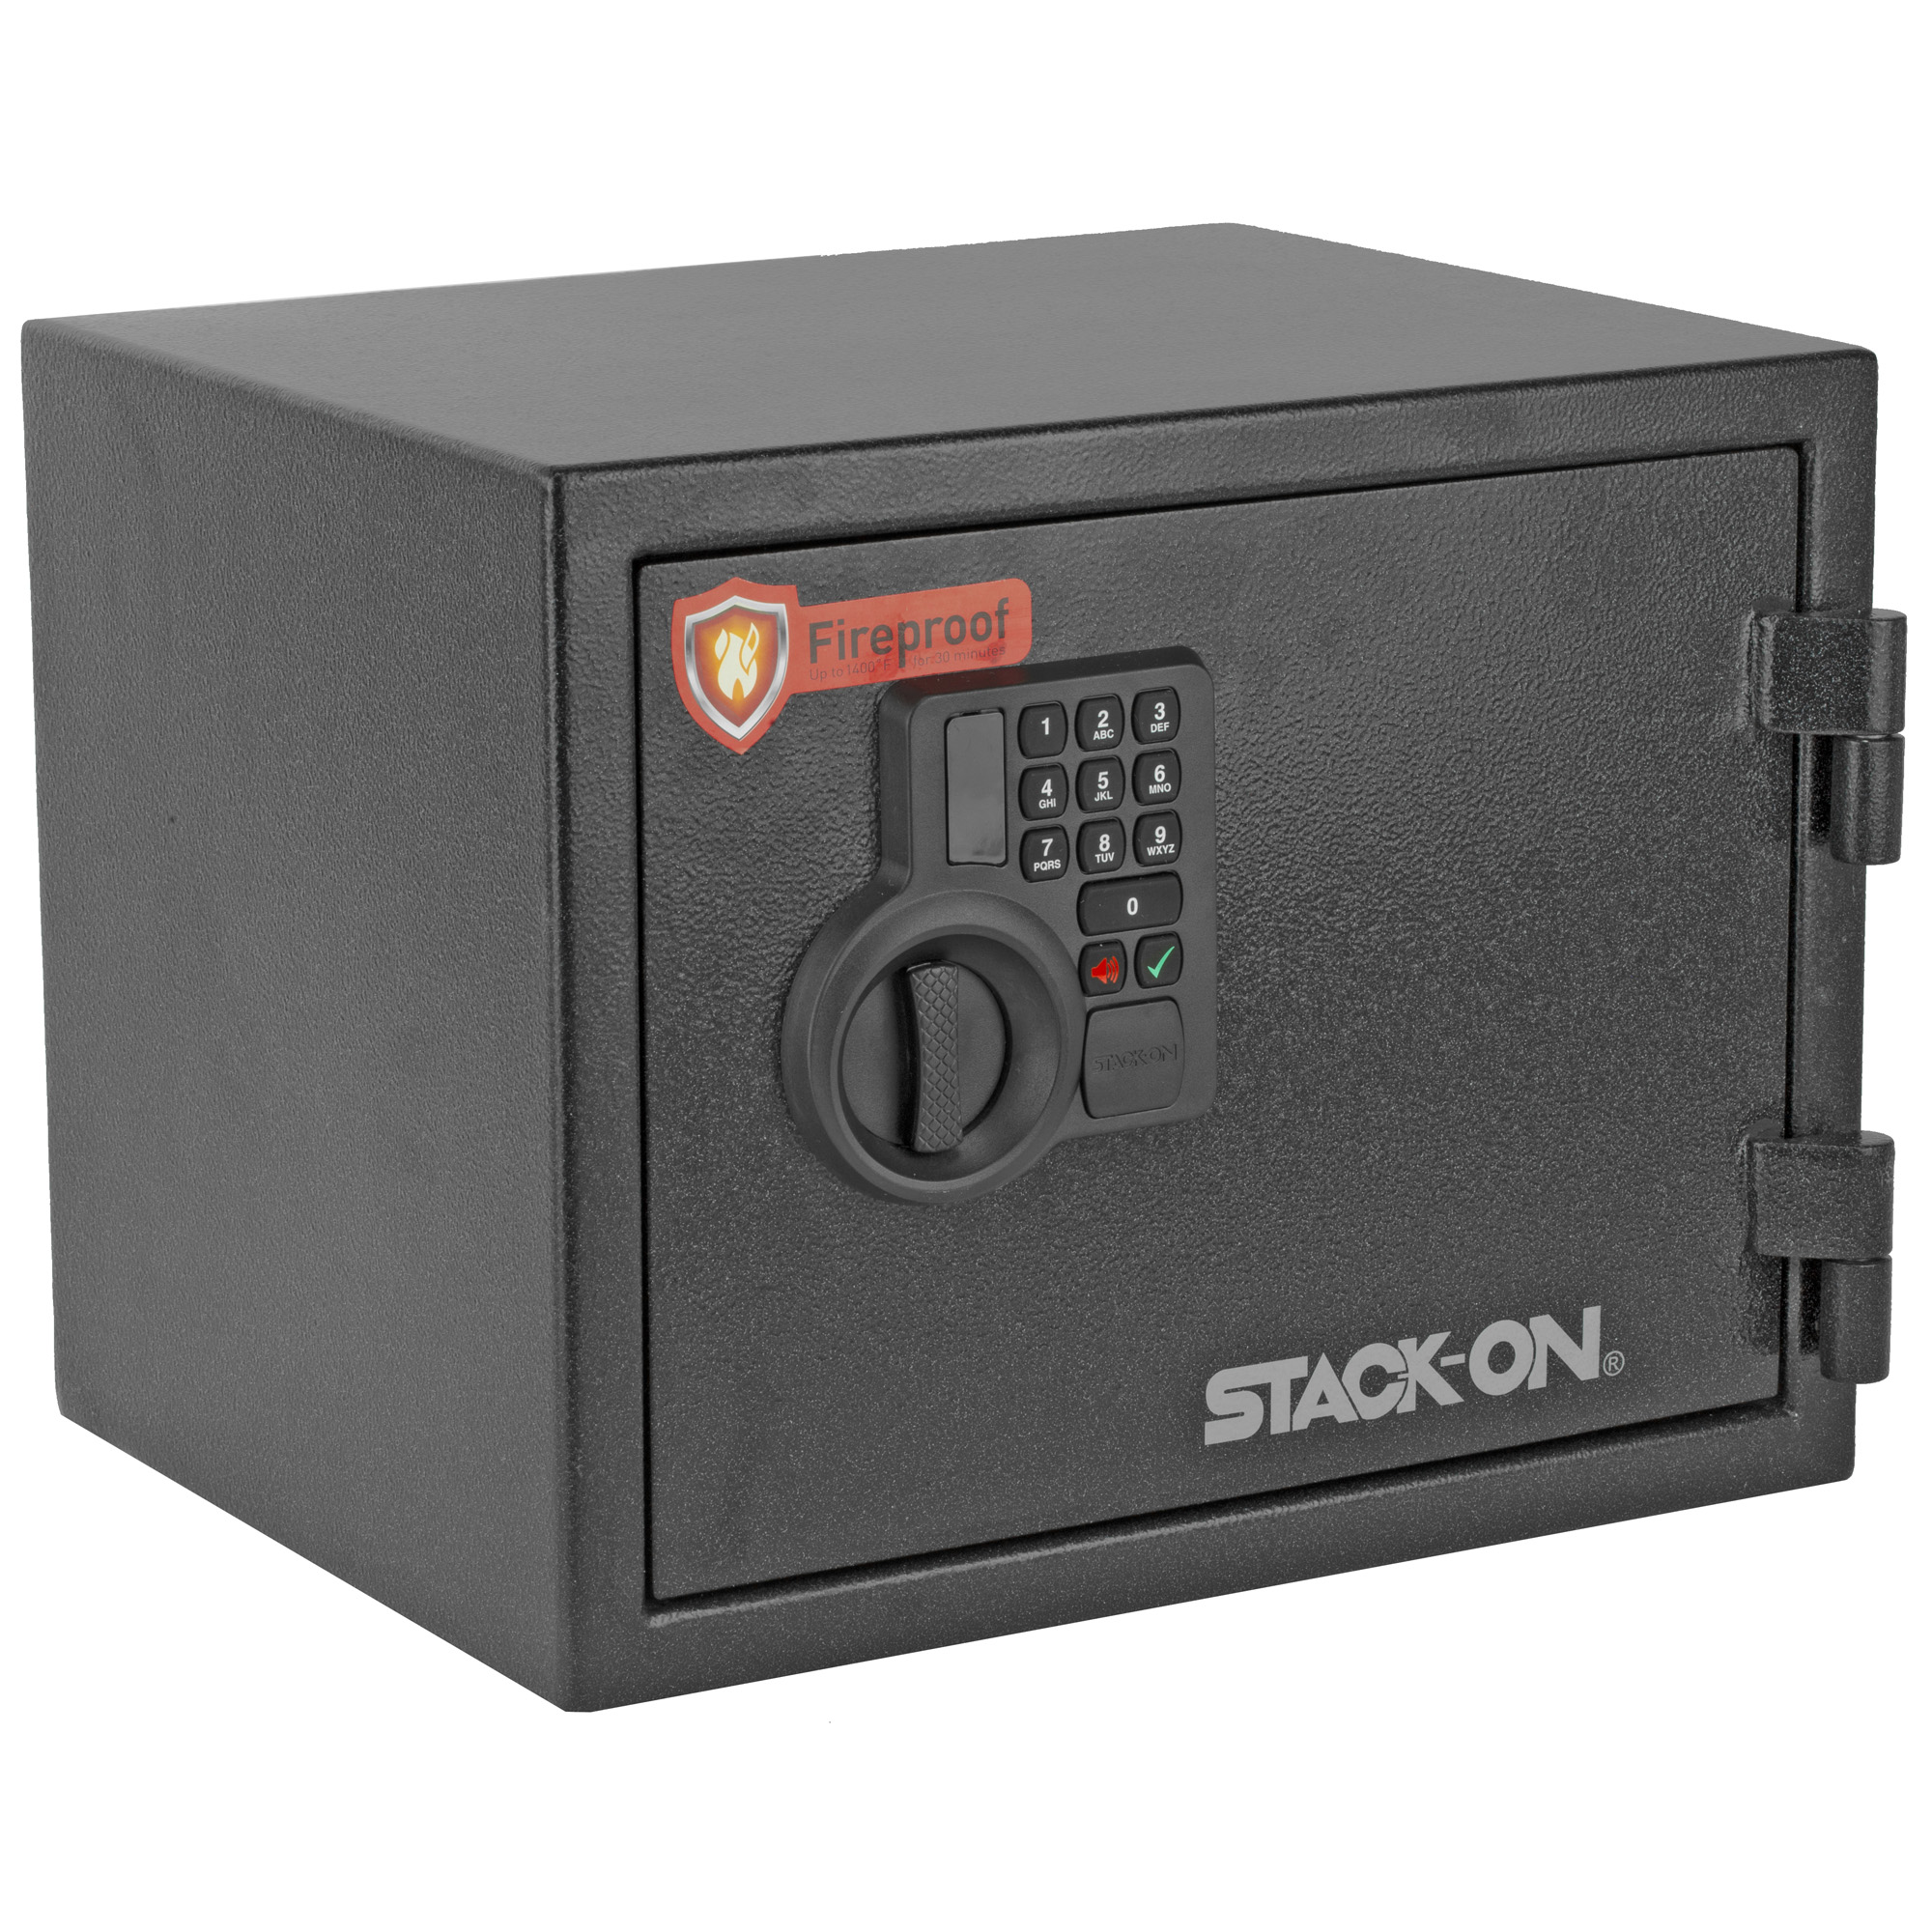 """This small fireproof personal safe features all-steel welded construction to provide protection that goes far beyond that of similarly priced safes. The electronic lock allows you to program a personalized 3-8 digit combination"""" has a low battery warning system"""" and includes a backup key."""